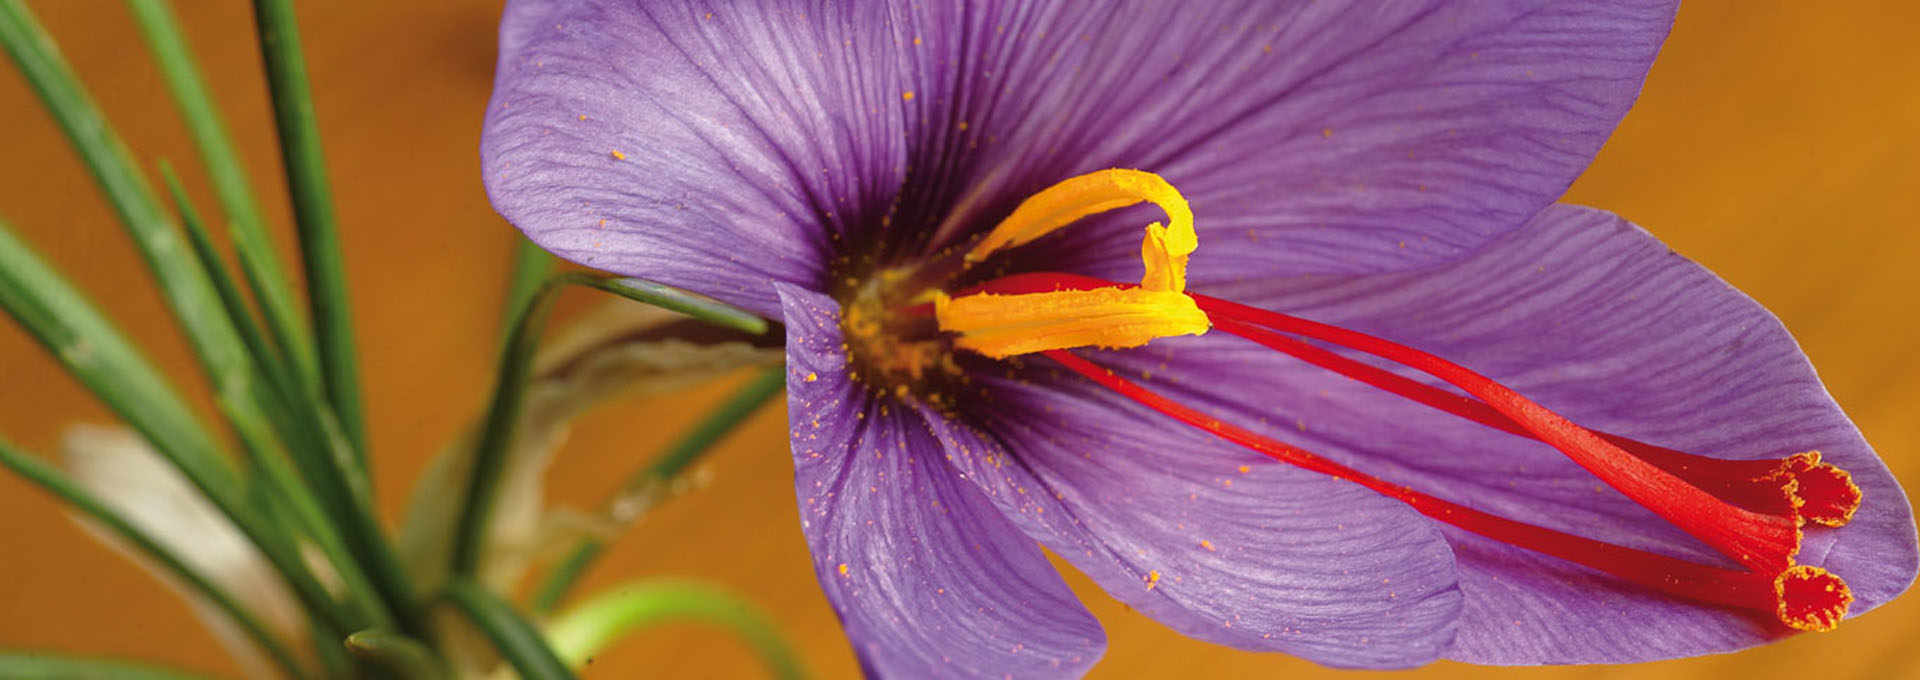 Italian Saffron: Time For A Revival